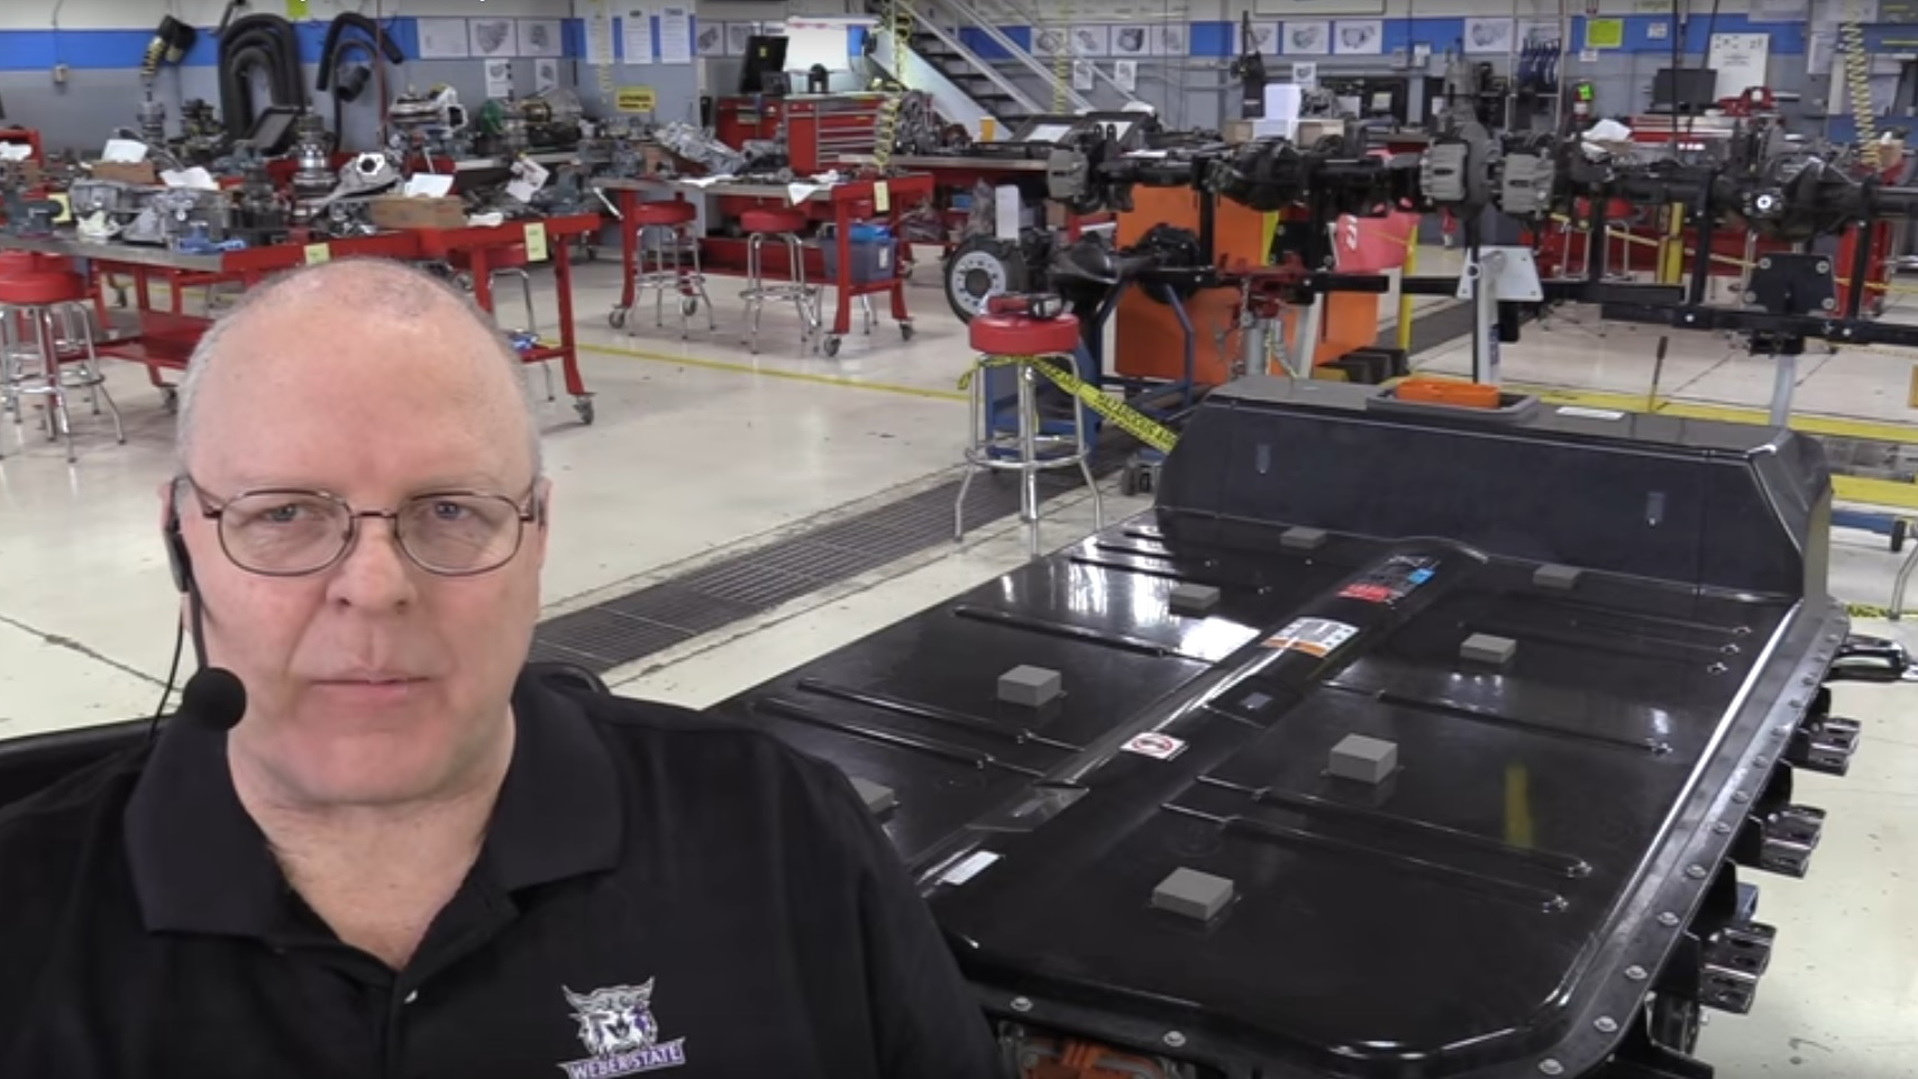 Professor John Kelly of Weber State University, Utah, shown before Chevy Bolt EV battery disassembly